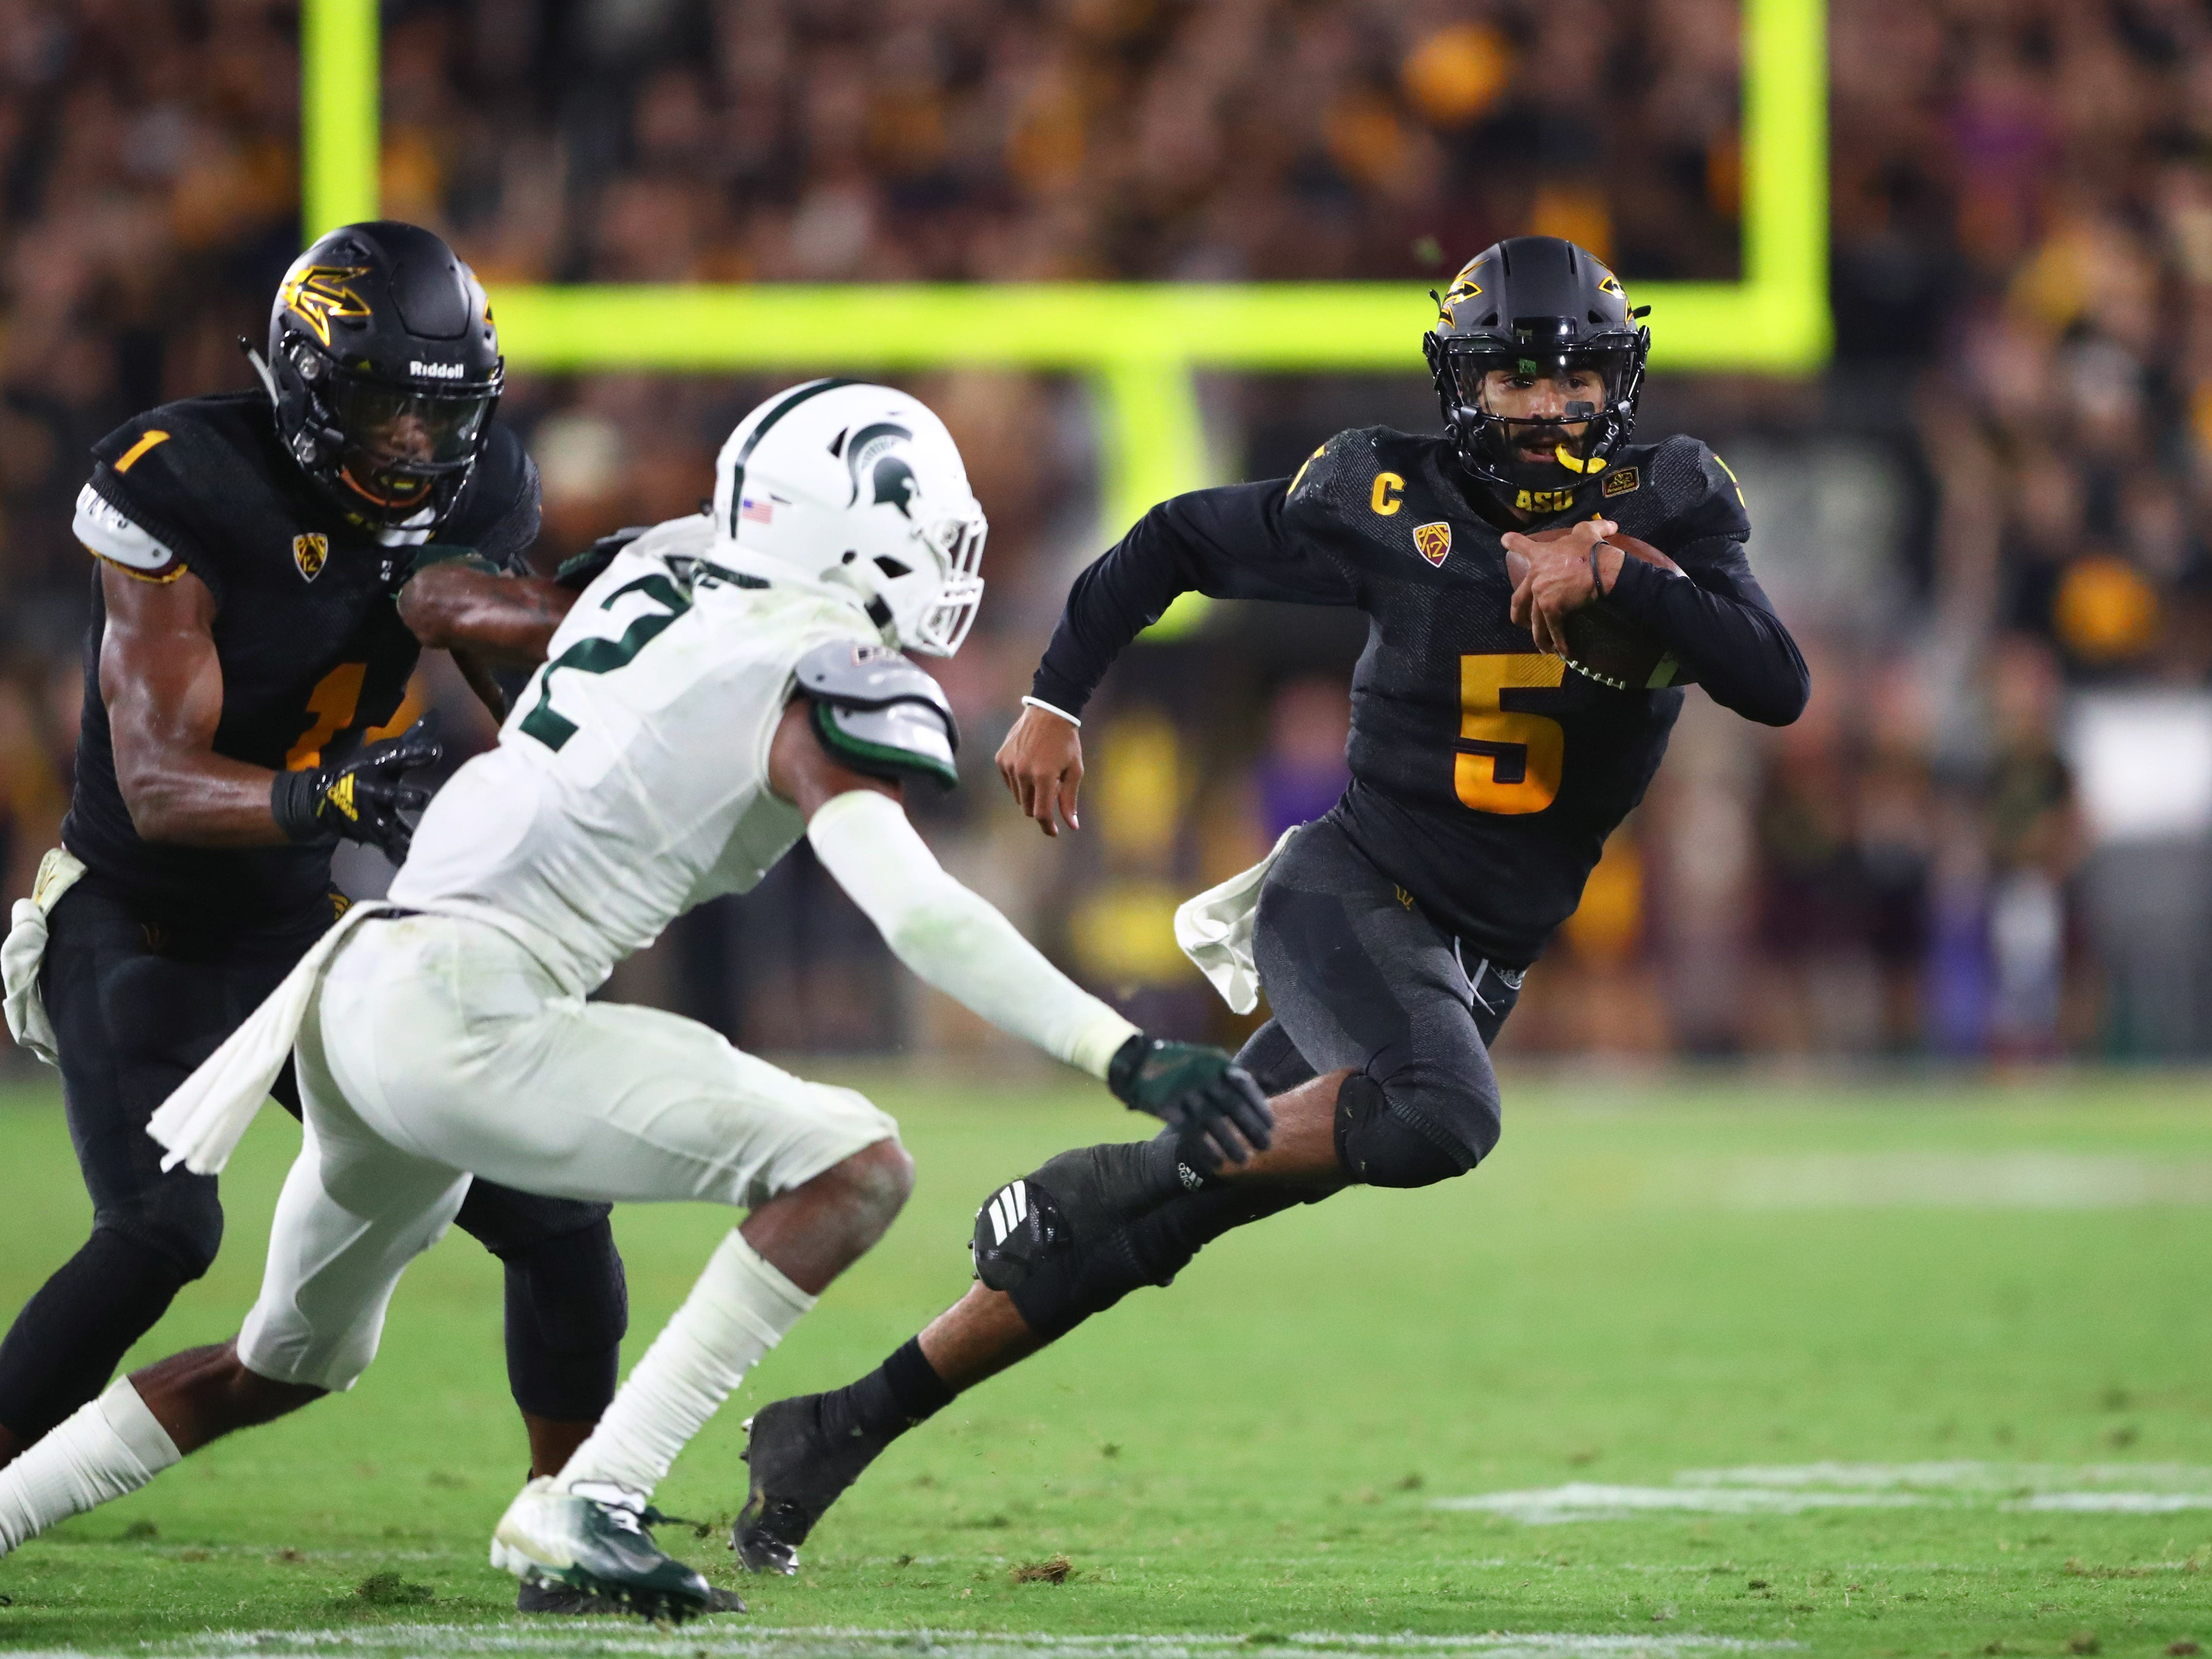 Arizona State Sun Devils quarterback Manny Wilkins (5) runs the ball in the fourth quarter against the Michigan State Spartans at Sun Devil Stadium.